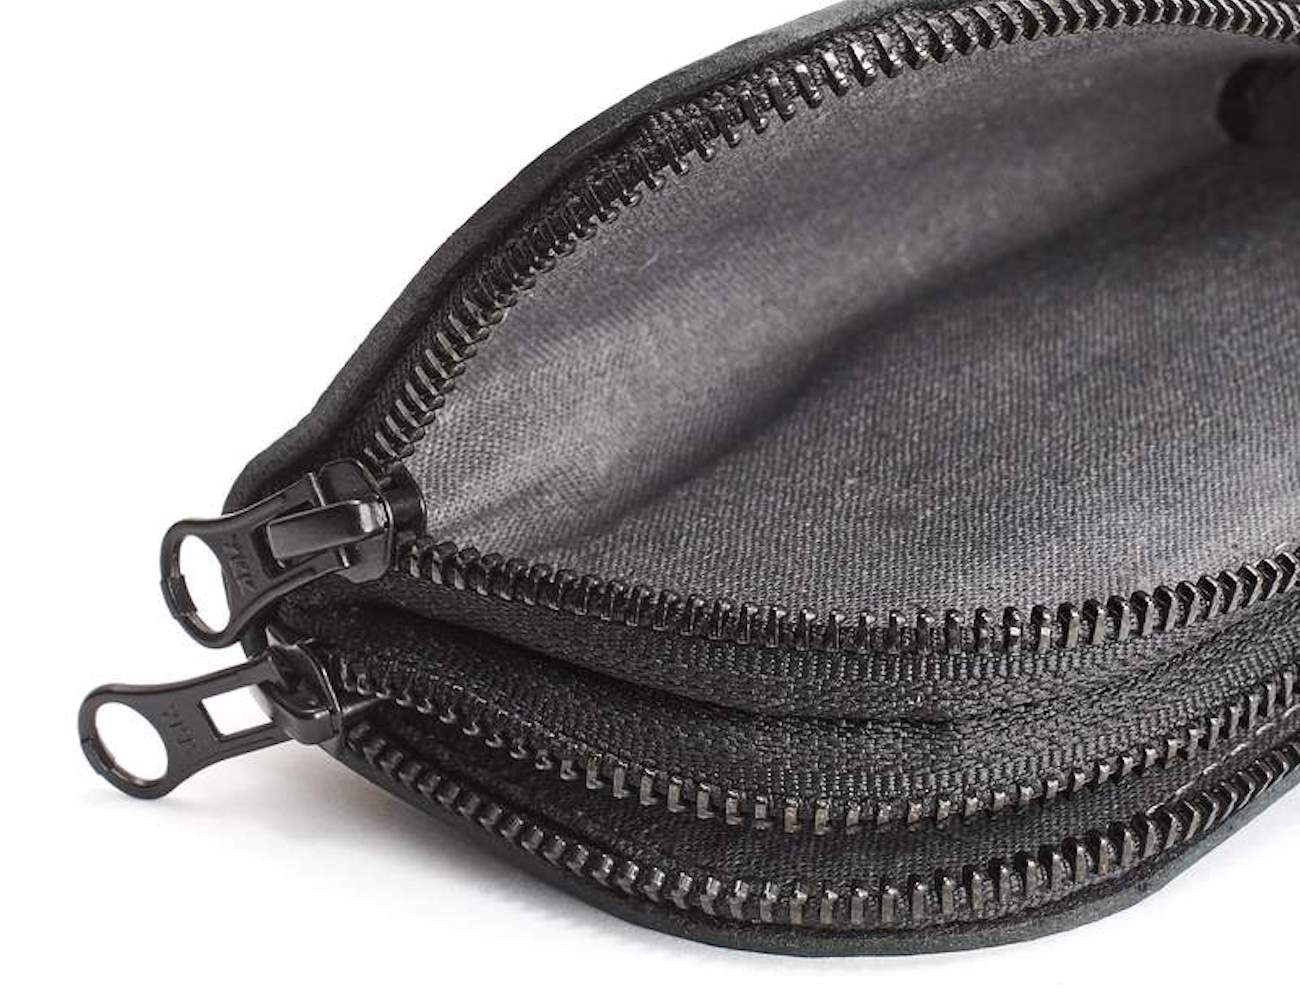 569a3768305 This glasses case lets you safely travel with two pairs of glasses ...